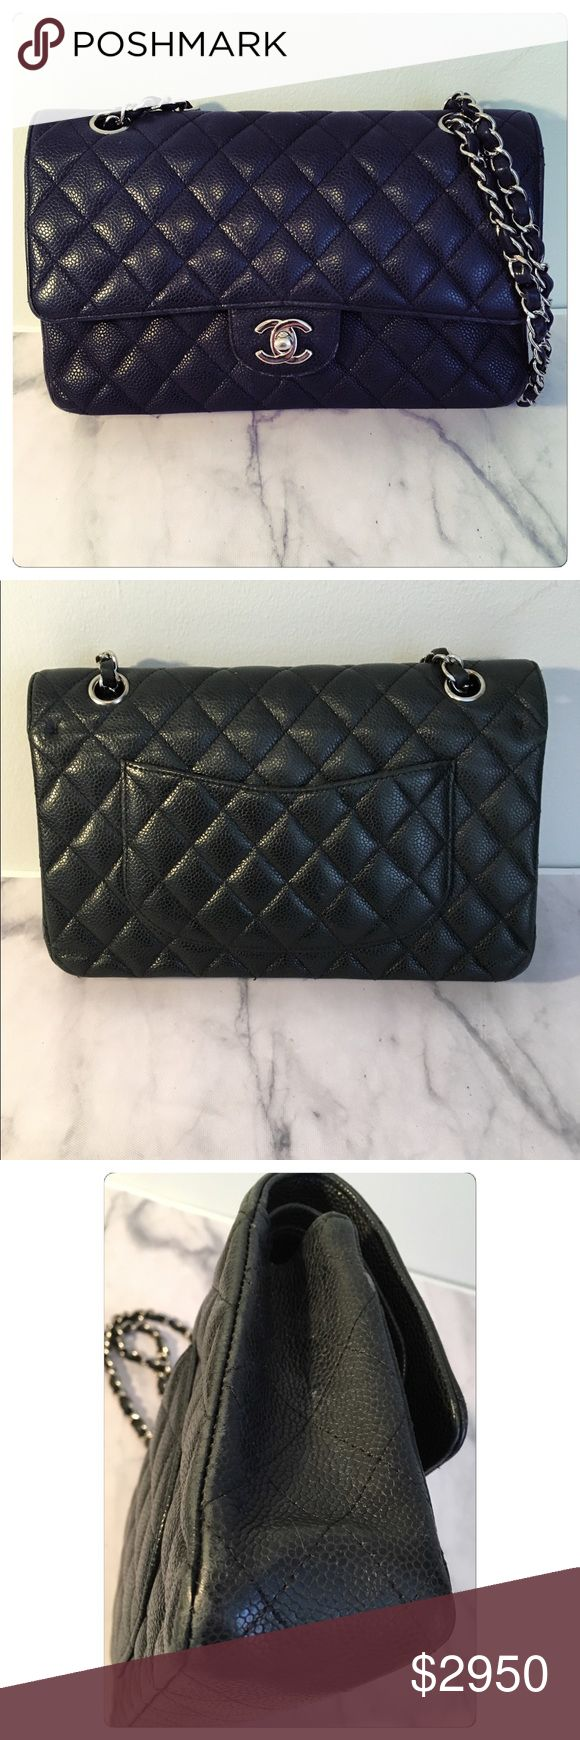  CHANEL Caviar Small Double Flap Bag Authentic CHANEL handbag with silver hardware, exterior rear flat pocket and CC turnlock.   Great used condition. Normal wear on corners, some edges, and inside. Please look at close-up photos. They are representative of wear.   No serial number due to cleaning. Serial number is not needed for authentication and does not hold value. Poshmark will authenticate this bag before sending it to you. NO TRADES. NO PP. No discussions of price in comments. Offers…